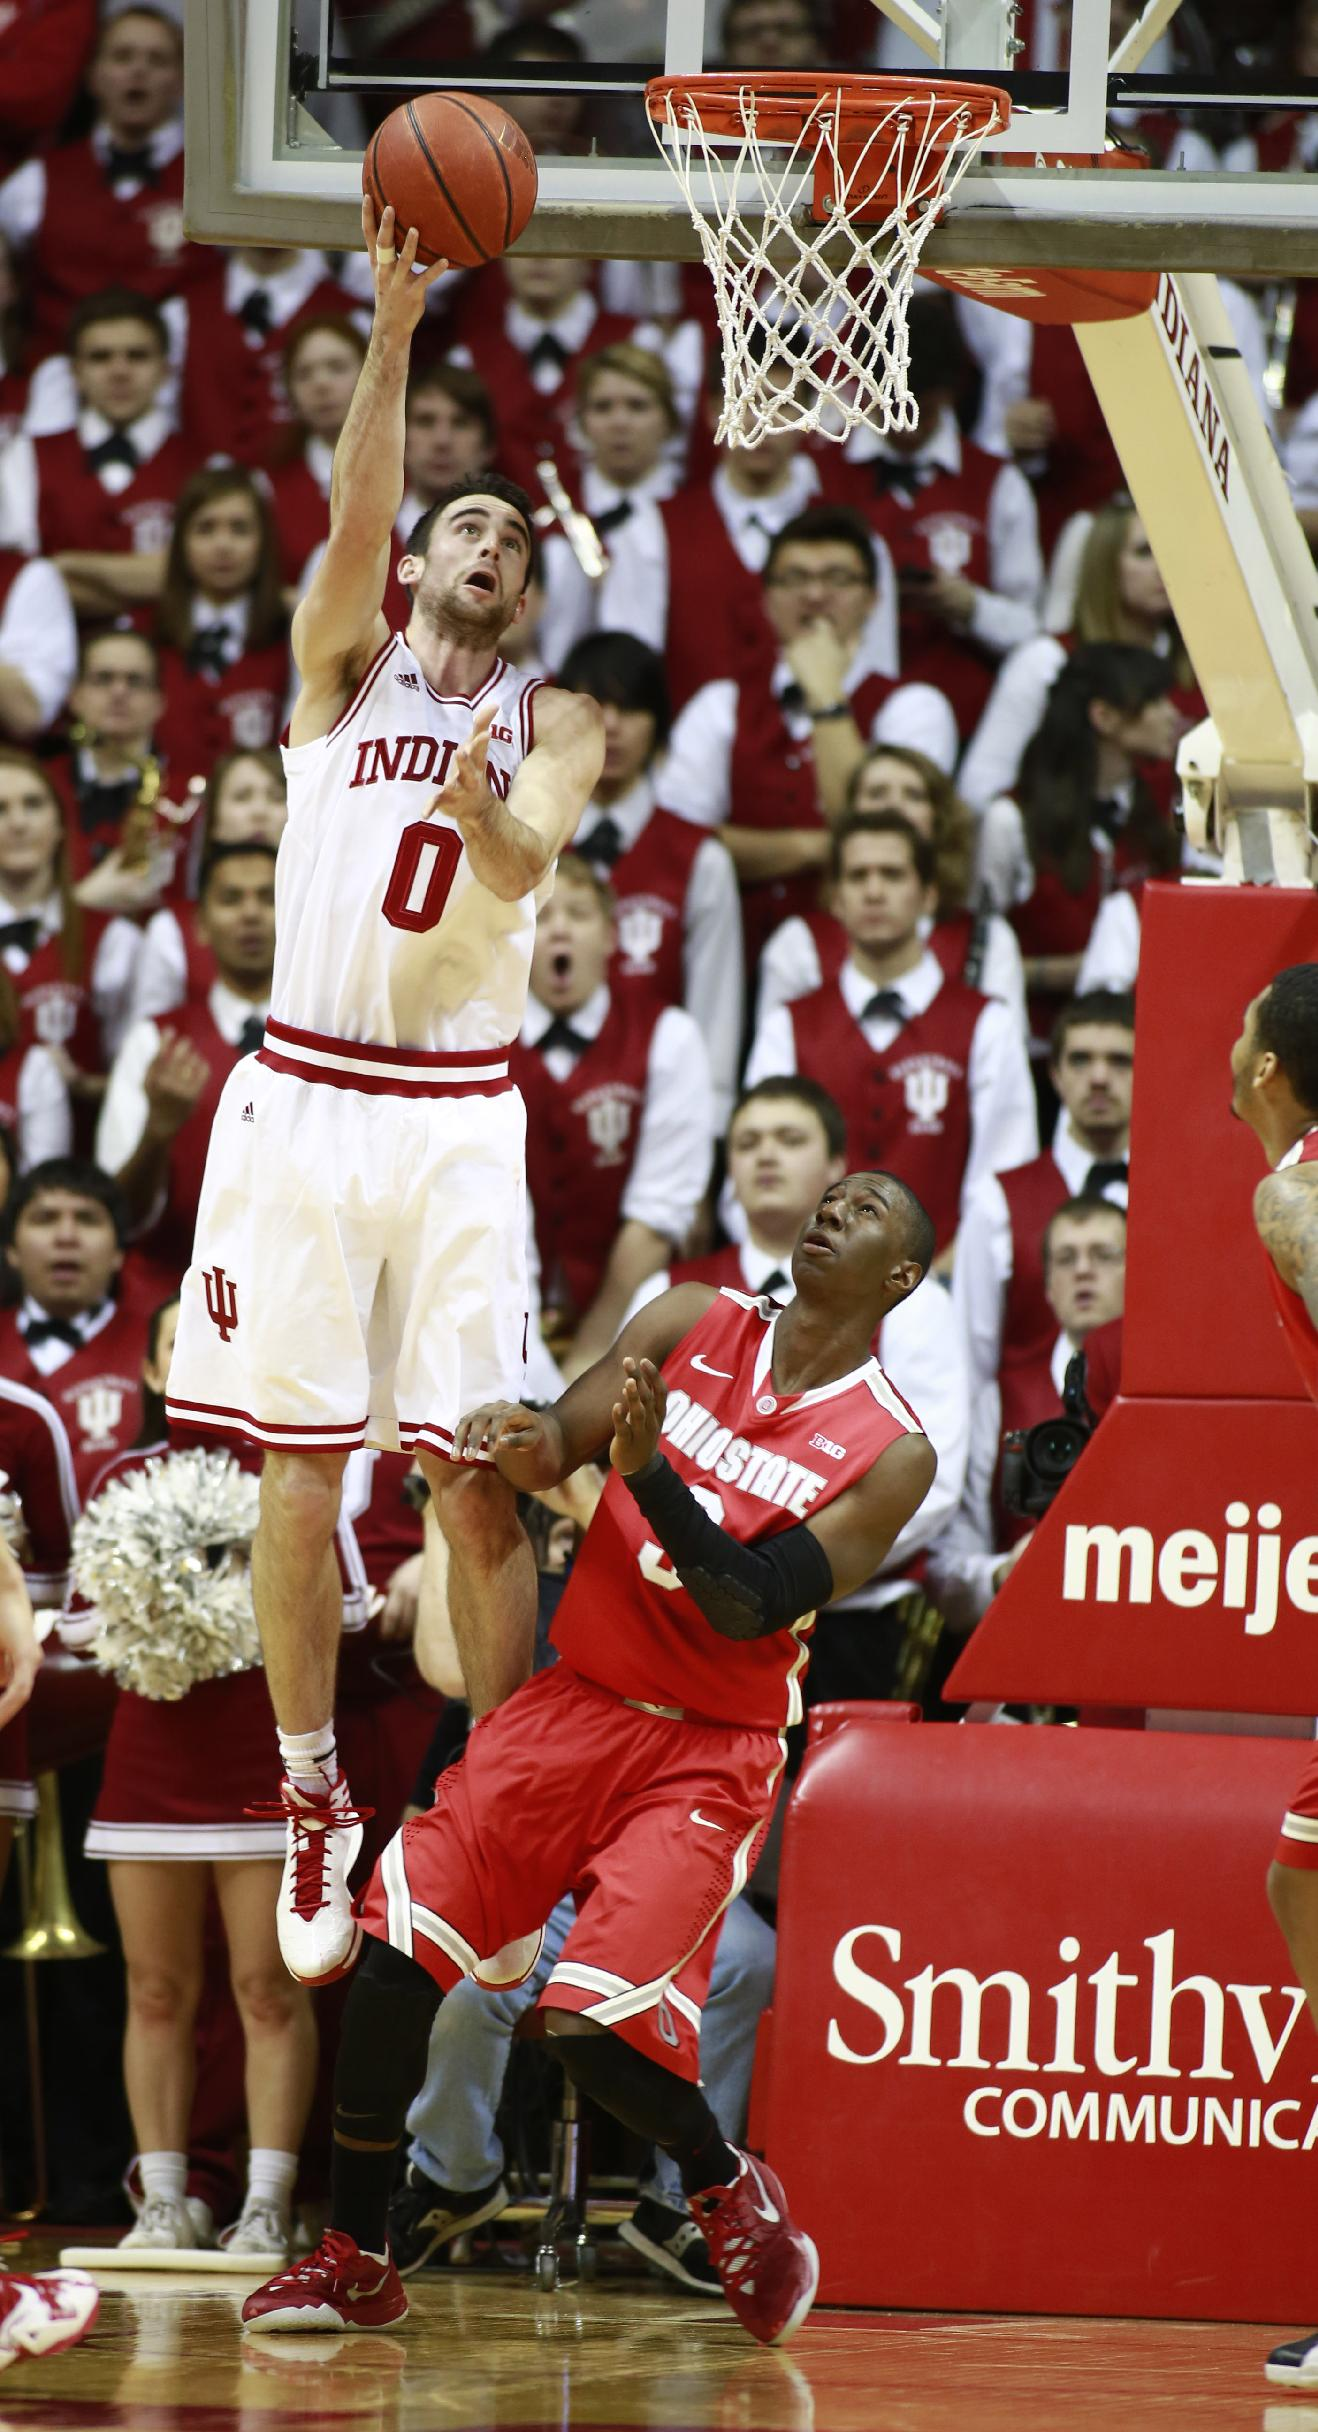 Indiana forward Will Sheehey (0) shoots the basketball defended by Ohio State guard Shannon Scott in the first half of an NCAA basketball game in Bloomington, Ind. Sunday, March 2, 2014. Indiana won 72-64